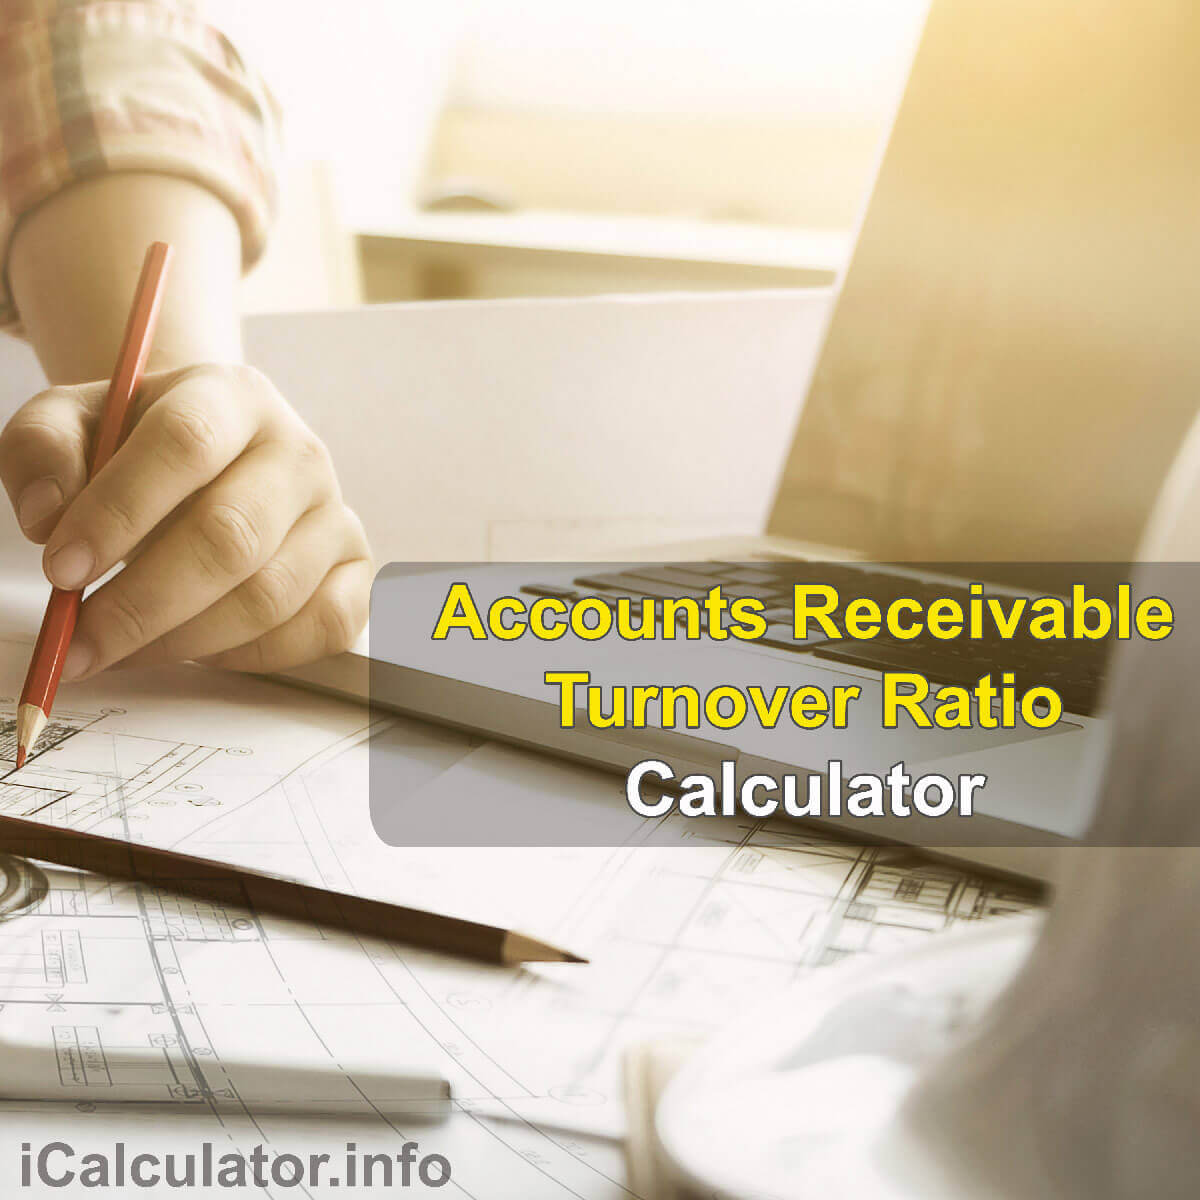 Accounts Receivables Turnover Ratio Calculator. This image provides details of how to calculate the Accounts Receivables Turnover Ratio using a calculator and notepad. By using the Accounts Receivables Turnover Ratio formula, the ARTR Calculator provides a true calculation of the quantify of the effectiveness of your company's ability to collect its credits that are owed by its clients